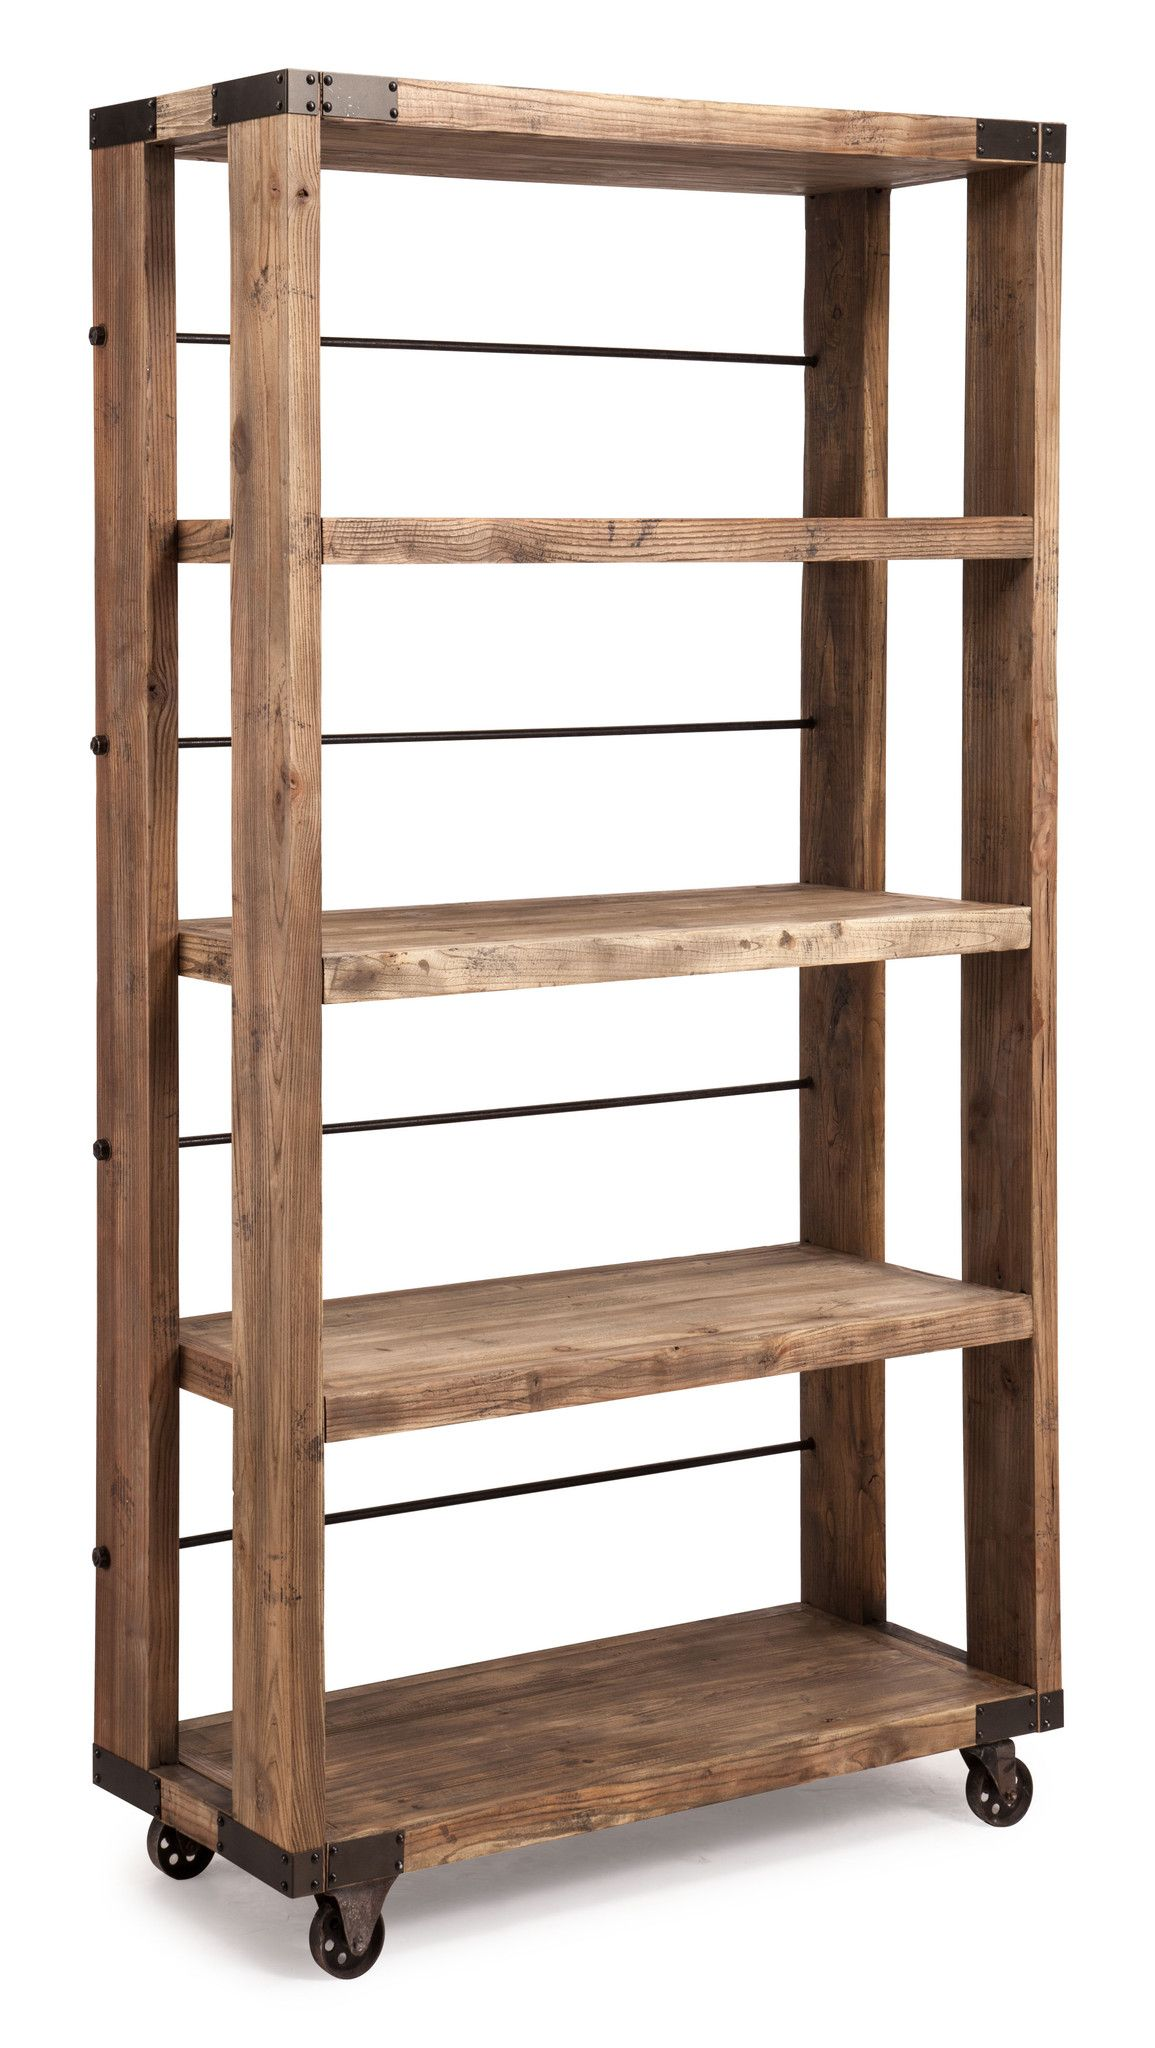 Attrayant Store Your Goods In Style With The Newcomb Shelving Unit. Made From  Distressed Natural Wood With Metal Accents, The Newcomb Shelf Houses 4  Levels Of Storage ...